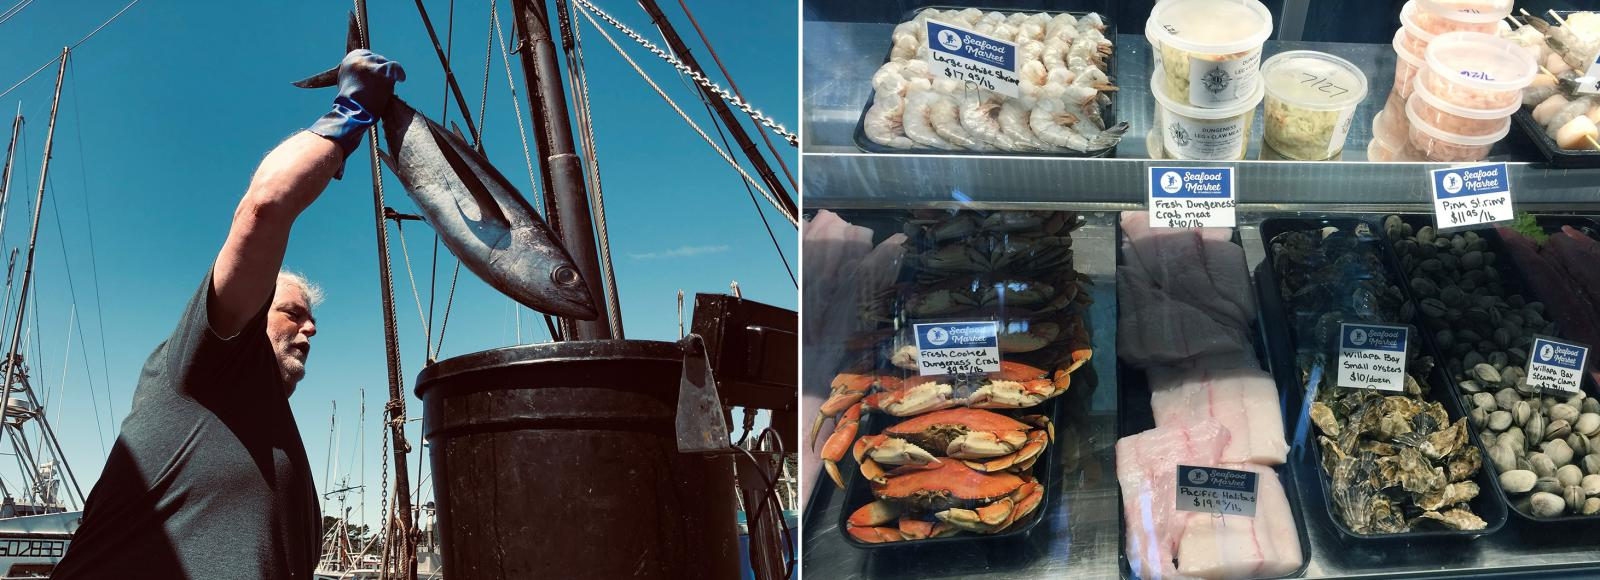 A fisherman loading an albacore into a bucket in the left photo; various types of fresh seafood for sale in a refrigerated case in the right photo